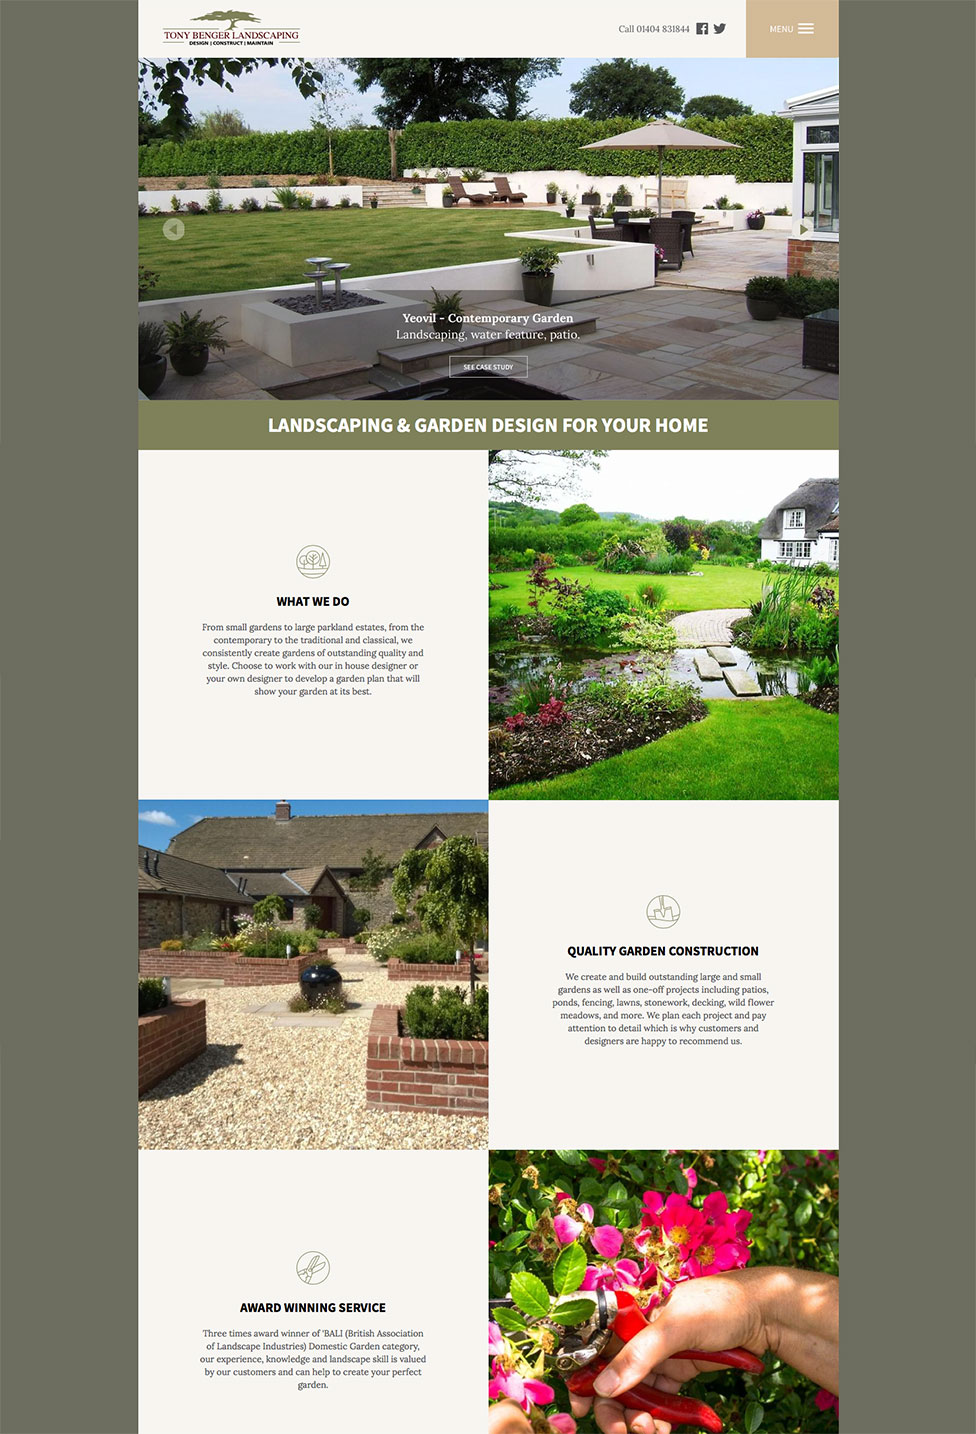 Award Winning Landscape Design, Build And Maintenance Company, Tony Benger  Landscaping, Commissioned Us To Design A New Website To Show Off Their ...